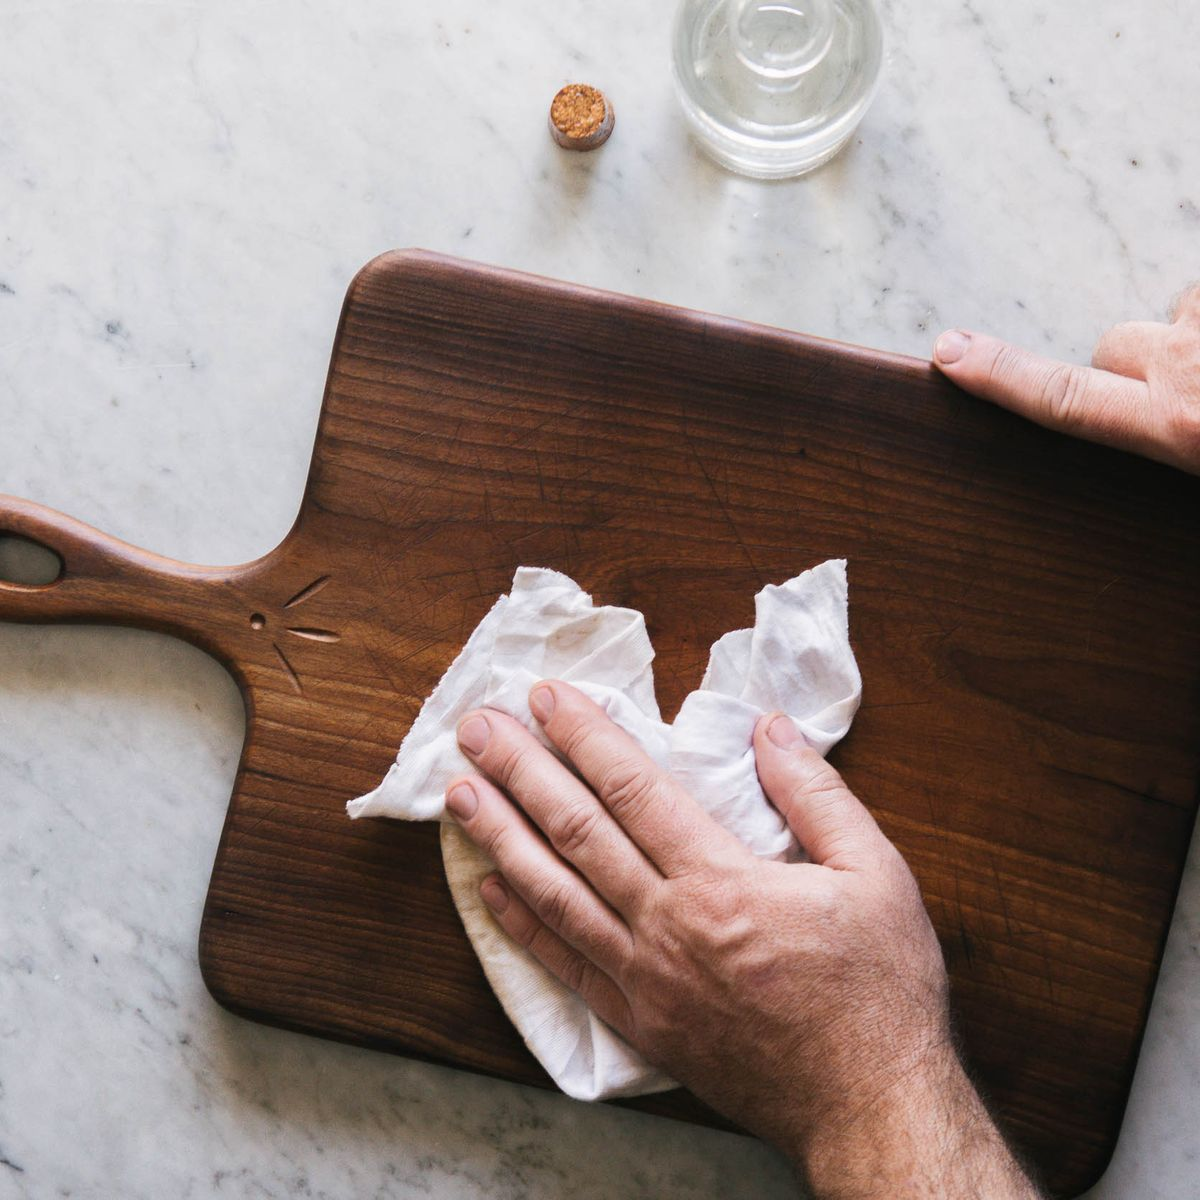 Oiling & Finishing Wooden Kitchen Utensils and Cutting Boards | Food52